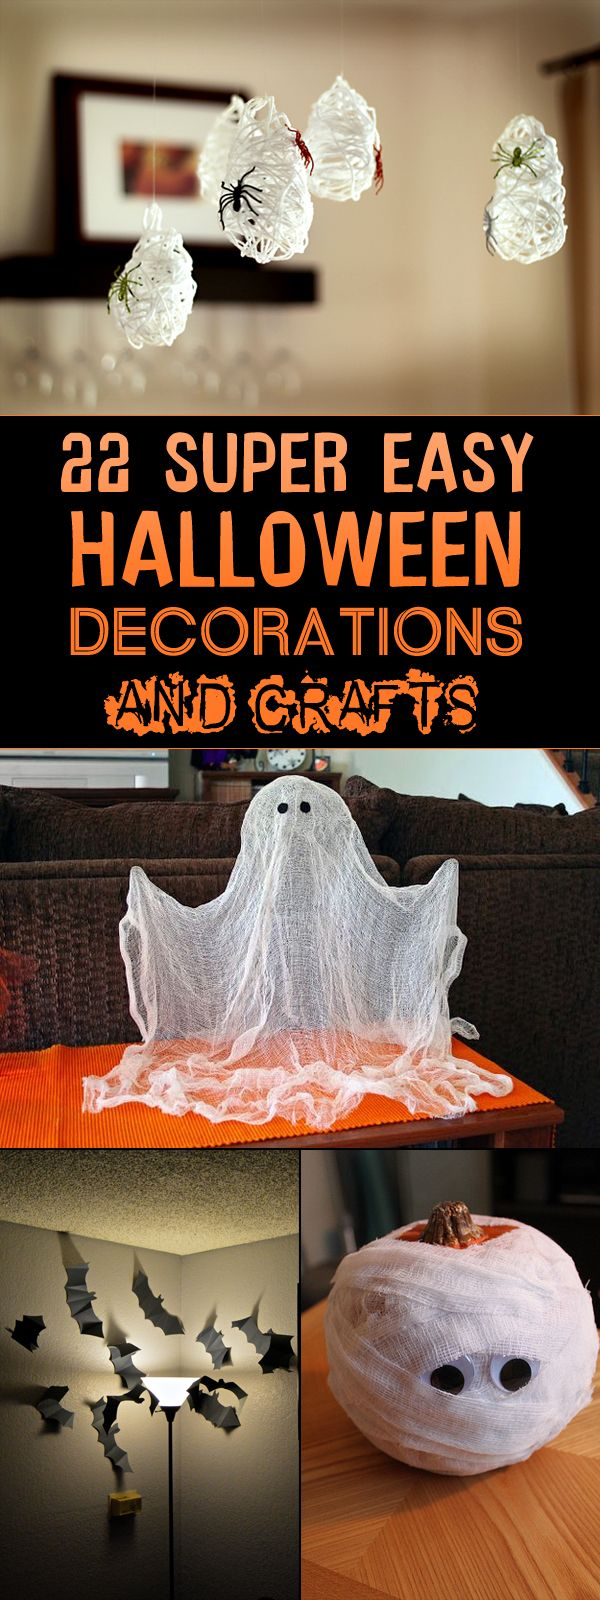 22 super easy halloween decorations and crafts you can make yourself - Easy Halloween Decoration Ideas